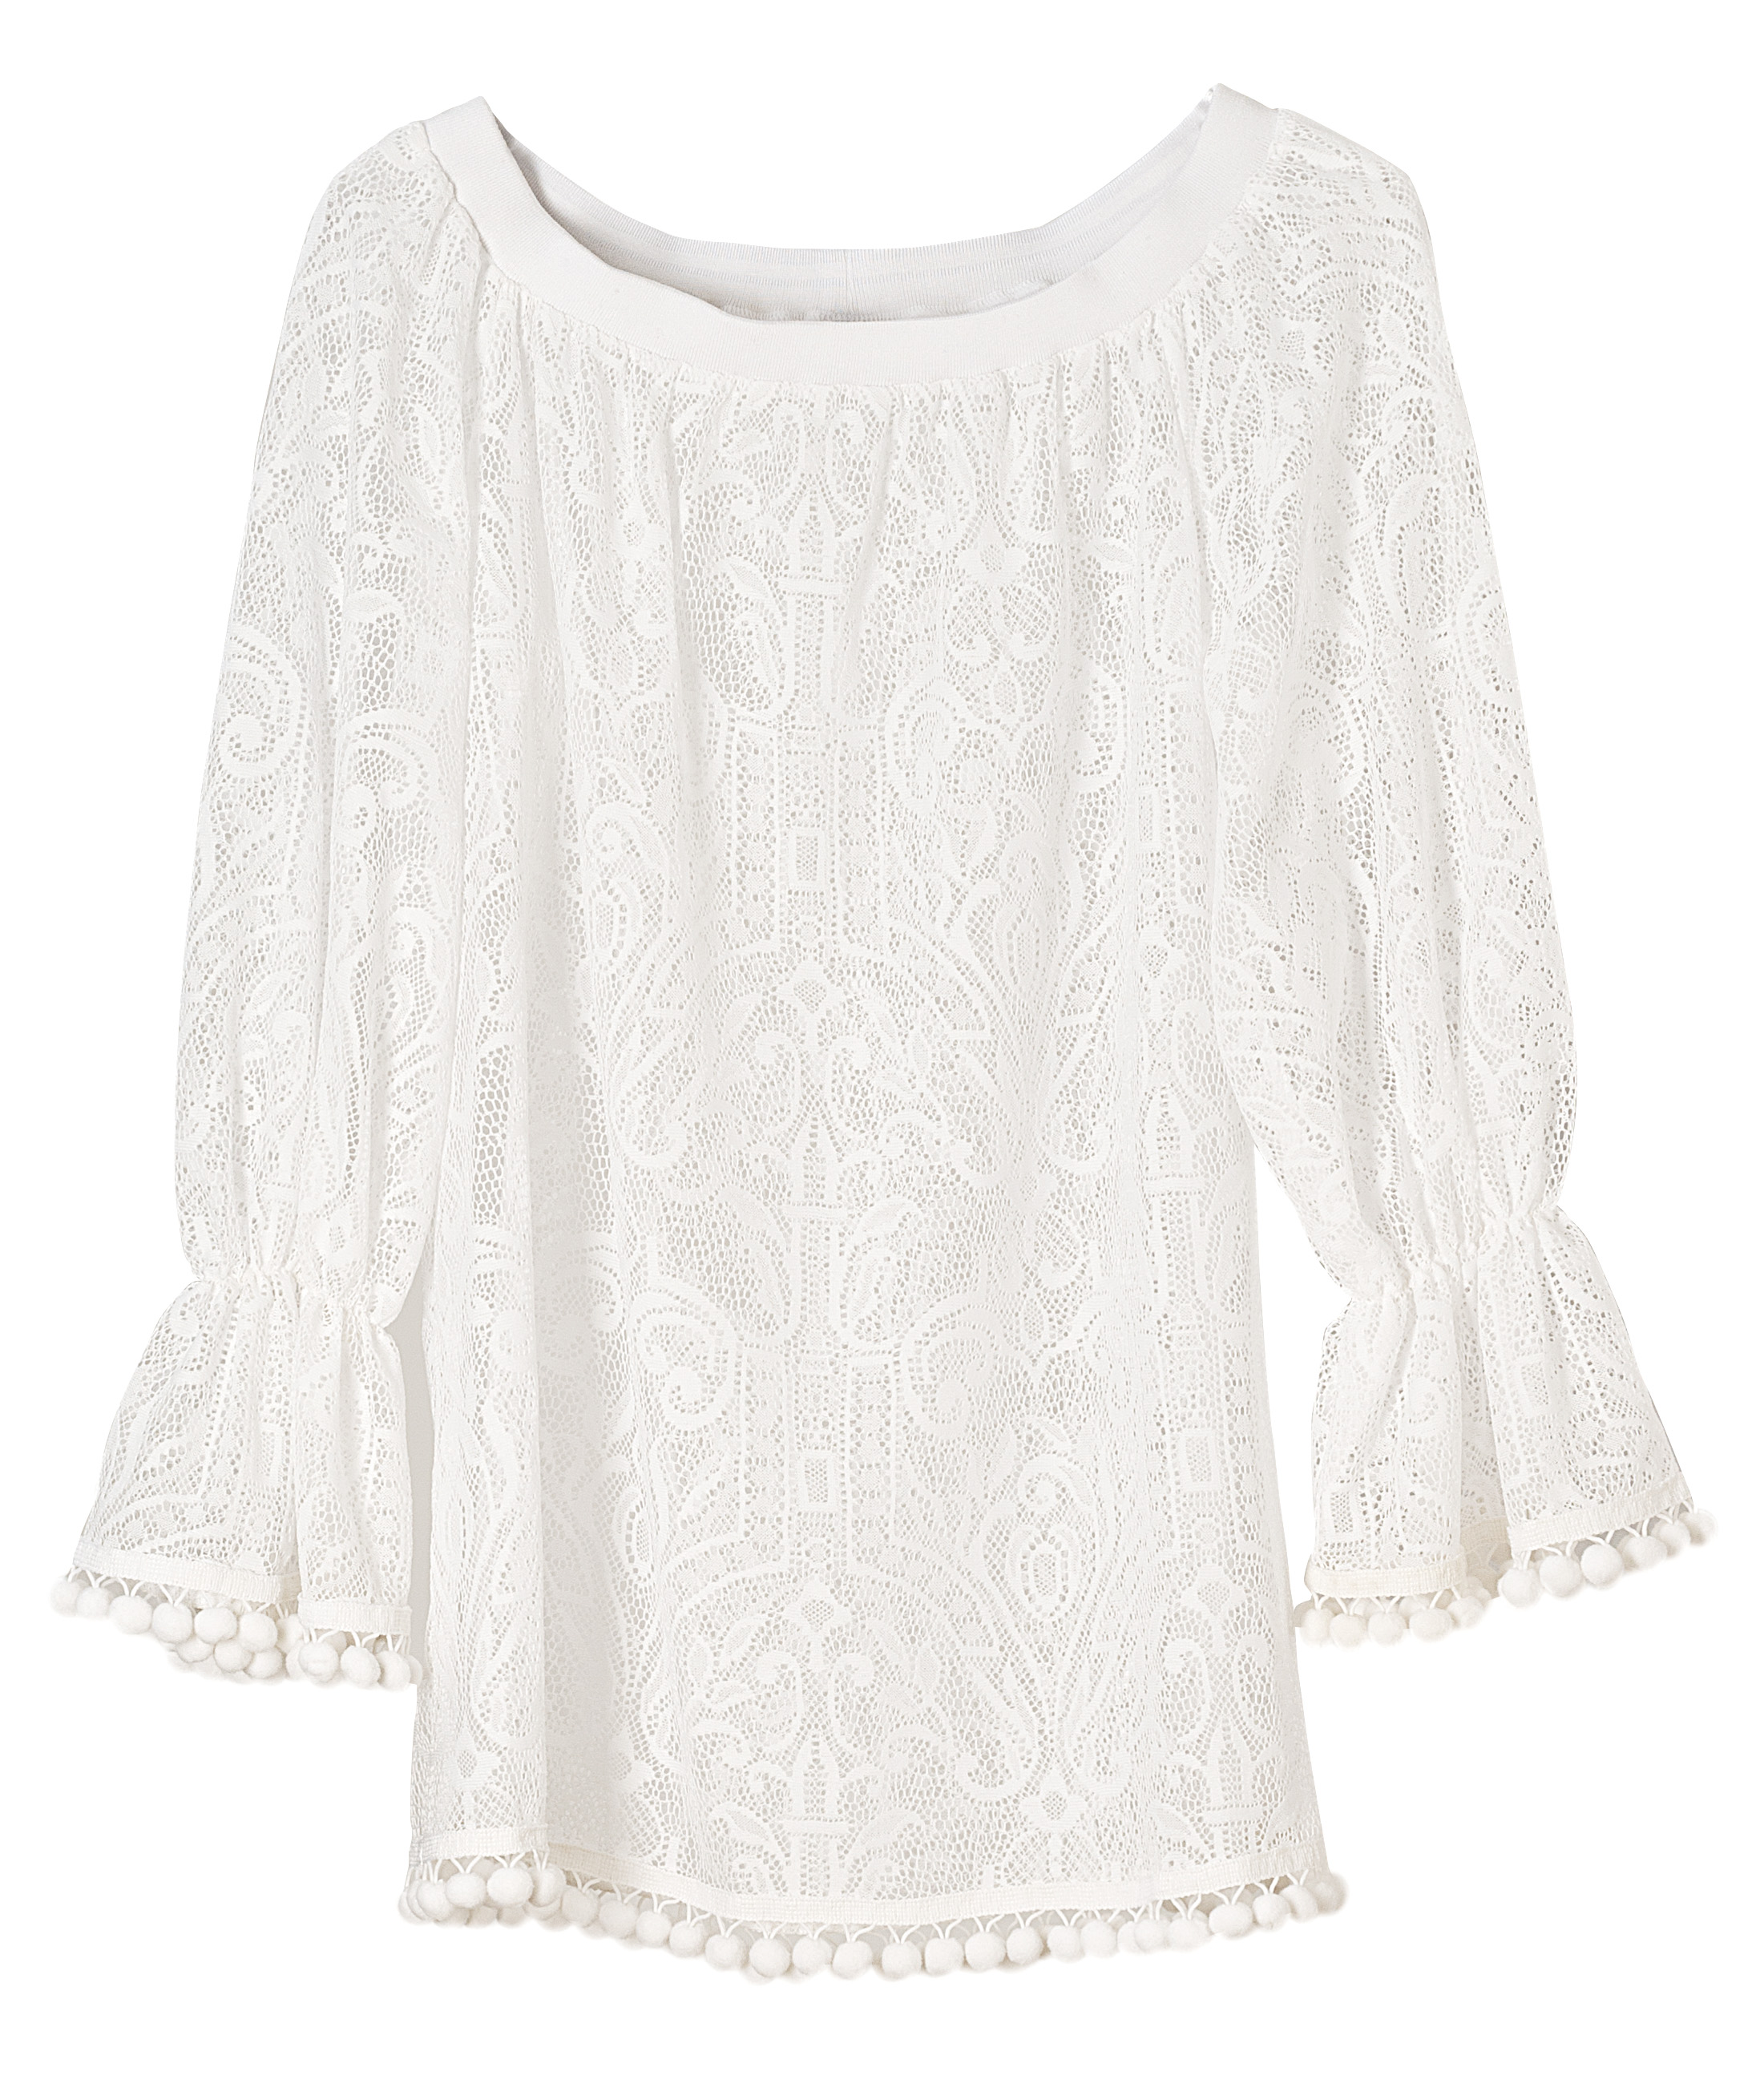 OffShoulder Pizzo Bianco-7105